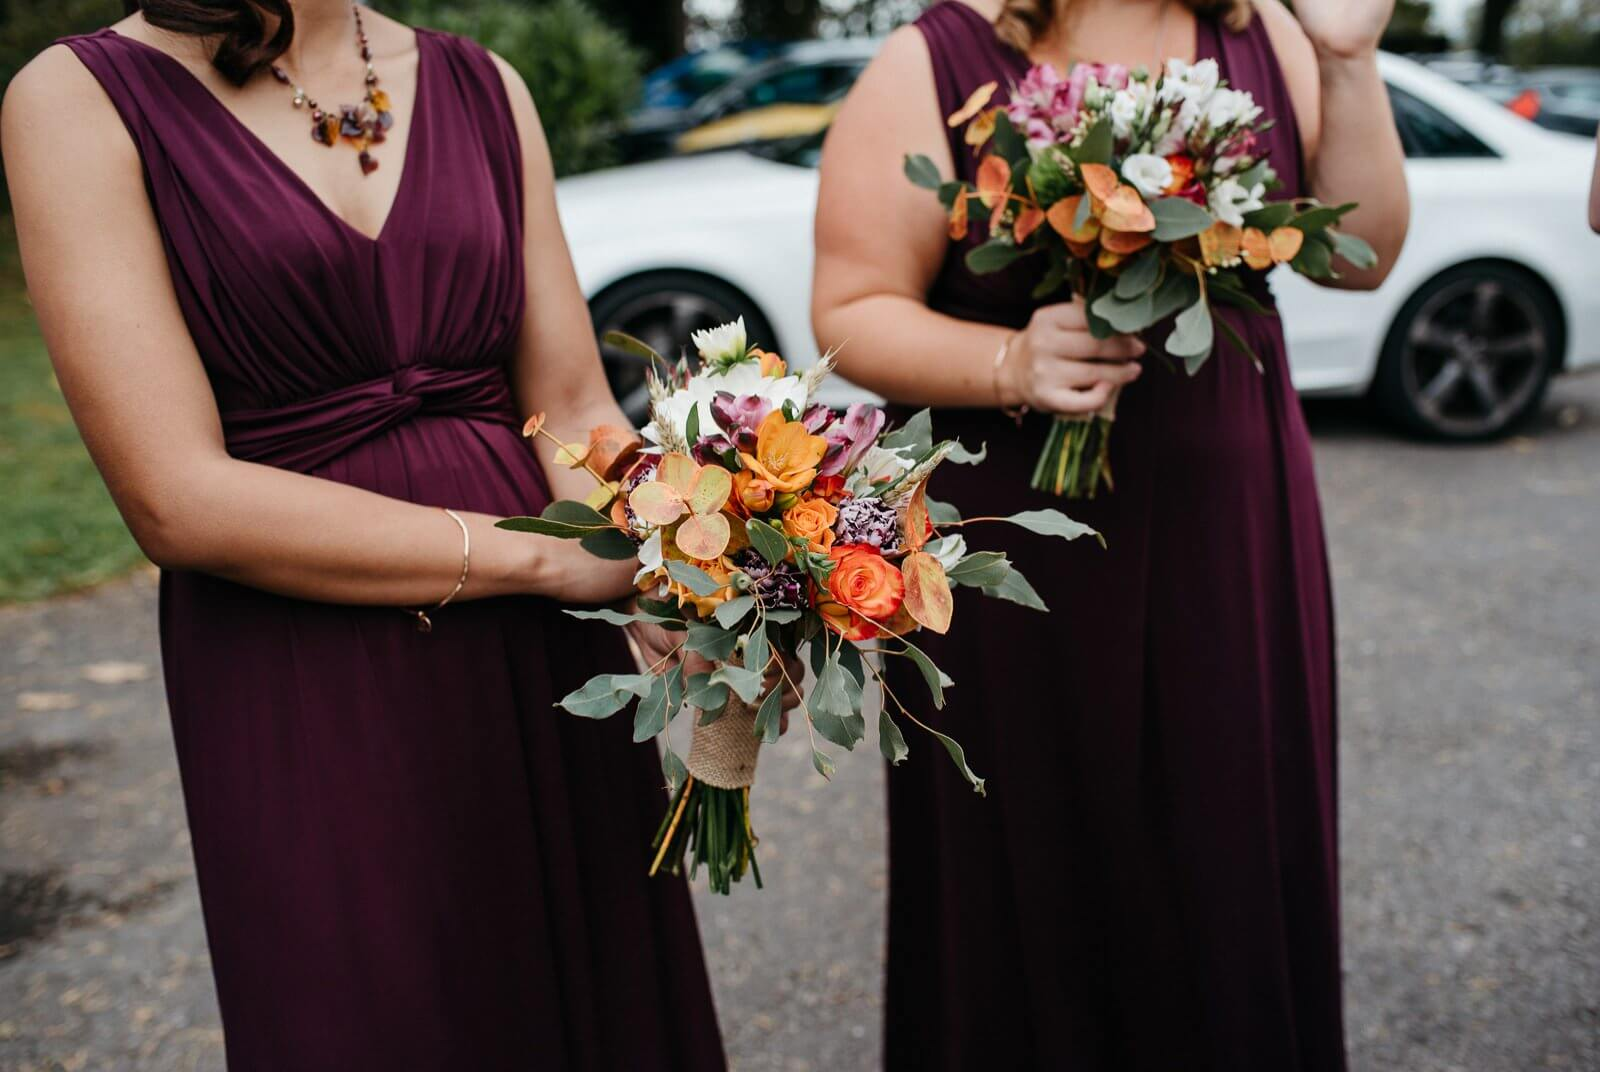 Autumnal bridesmaids wearing wine burgundy maxi dresses clutch onto gold, orange and hot pink bouquets outside Cardiff wedding venue